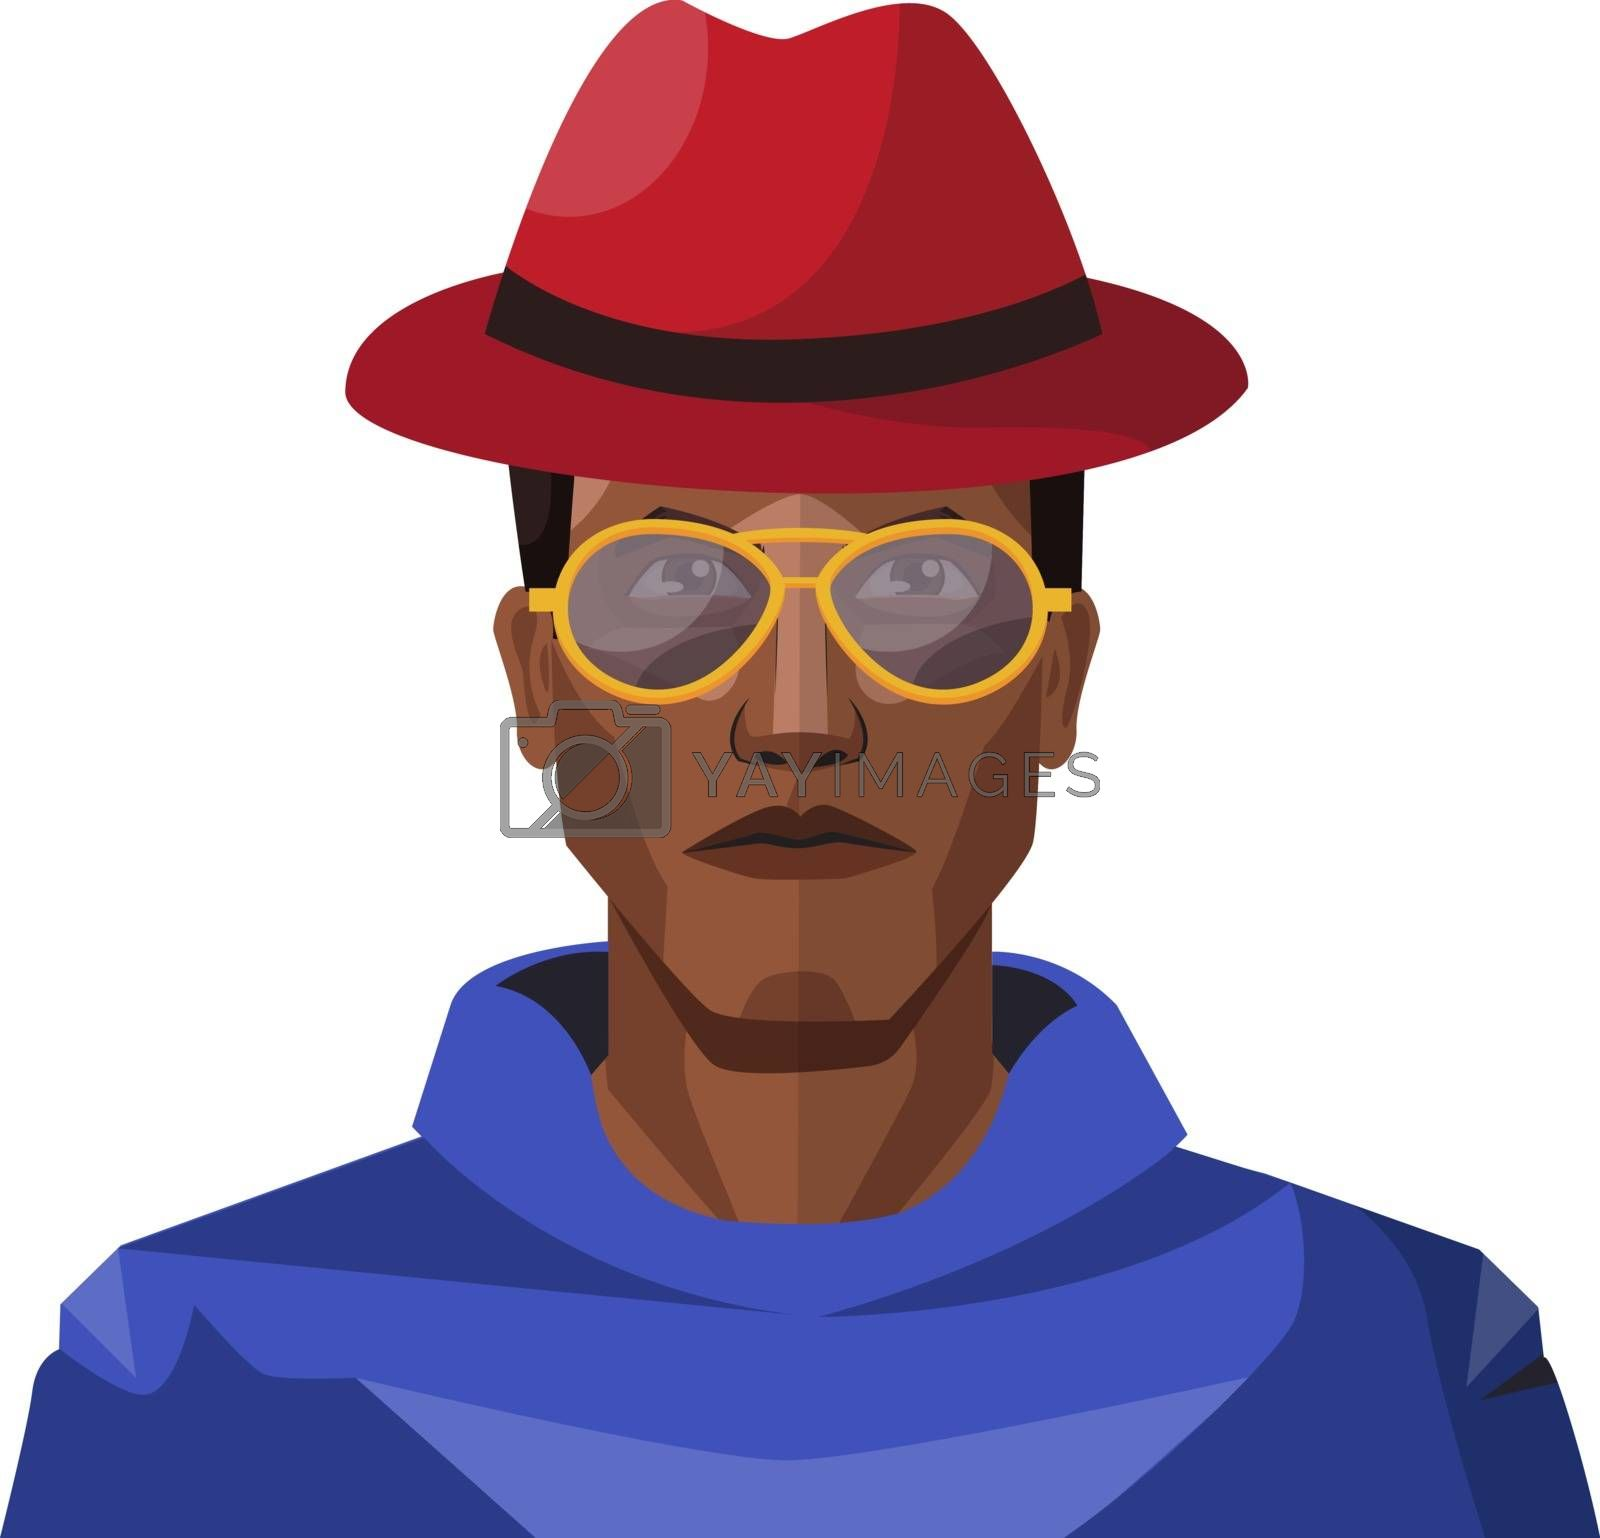 Royalty free image of Pretty looking guy wearing red hat and sunglasses illustration v by Morphart